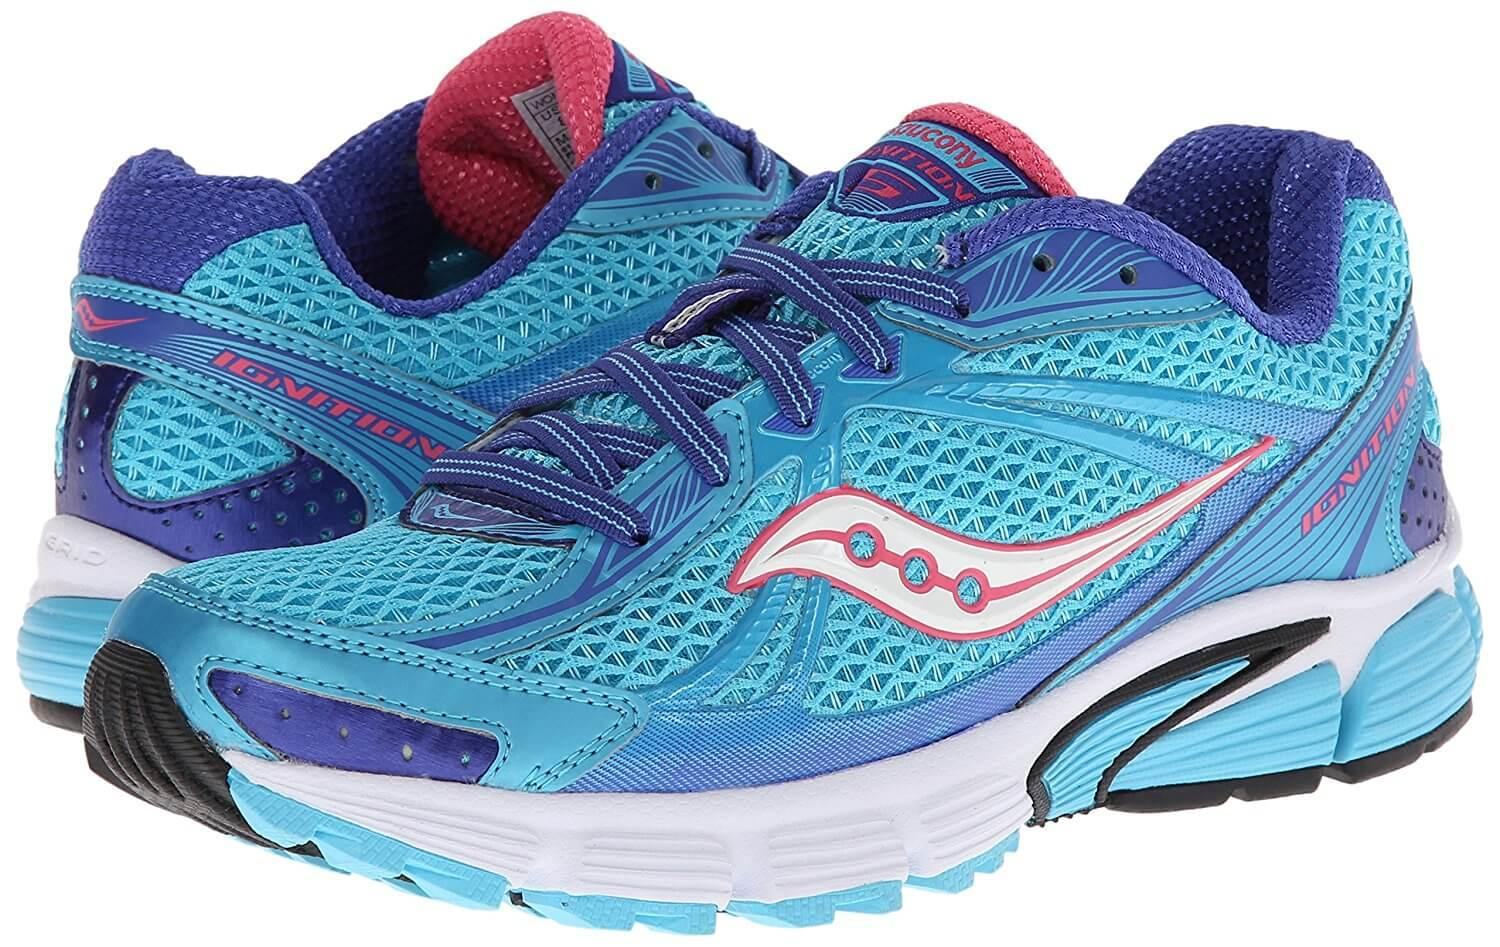 The Saucony Ignition 5 is great for beginner runners and heavier runners.